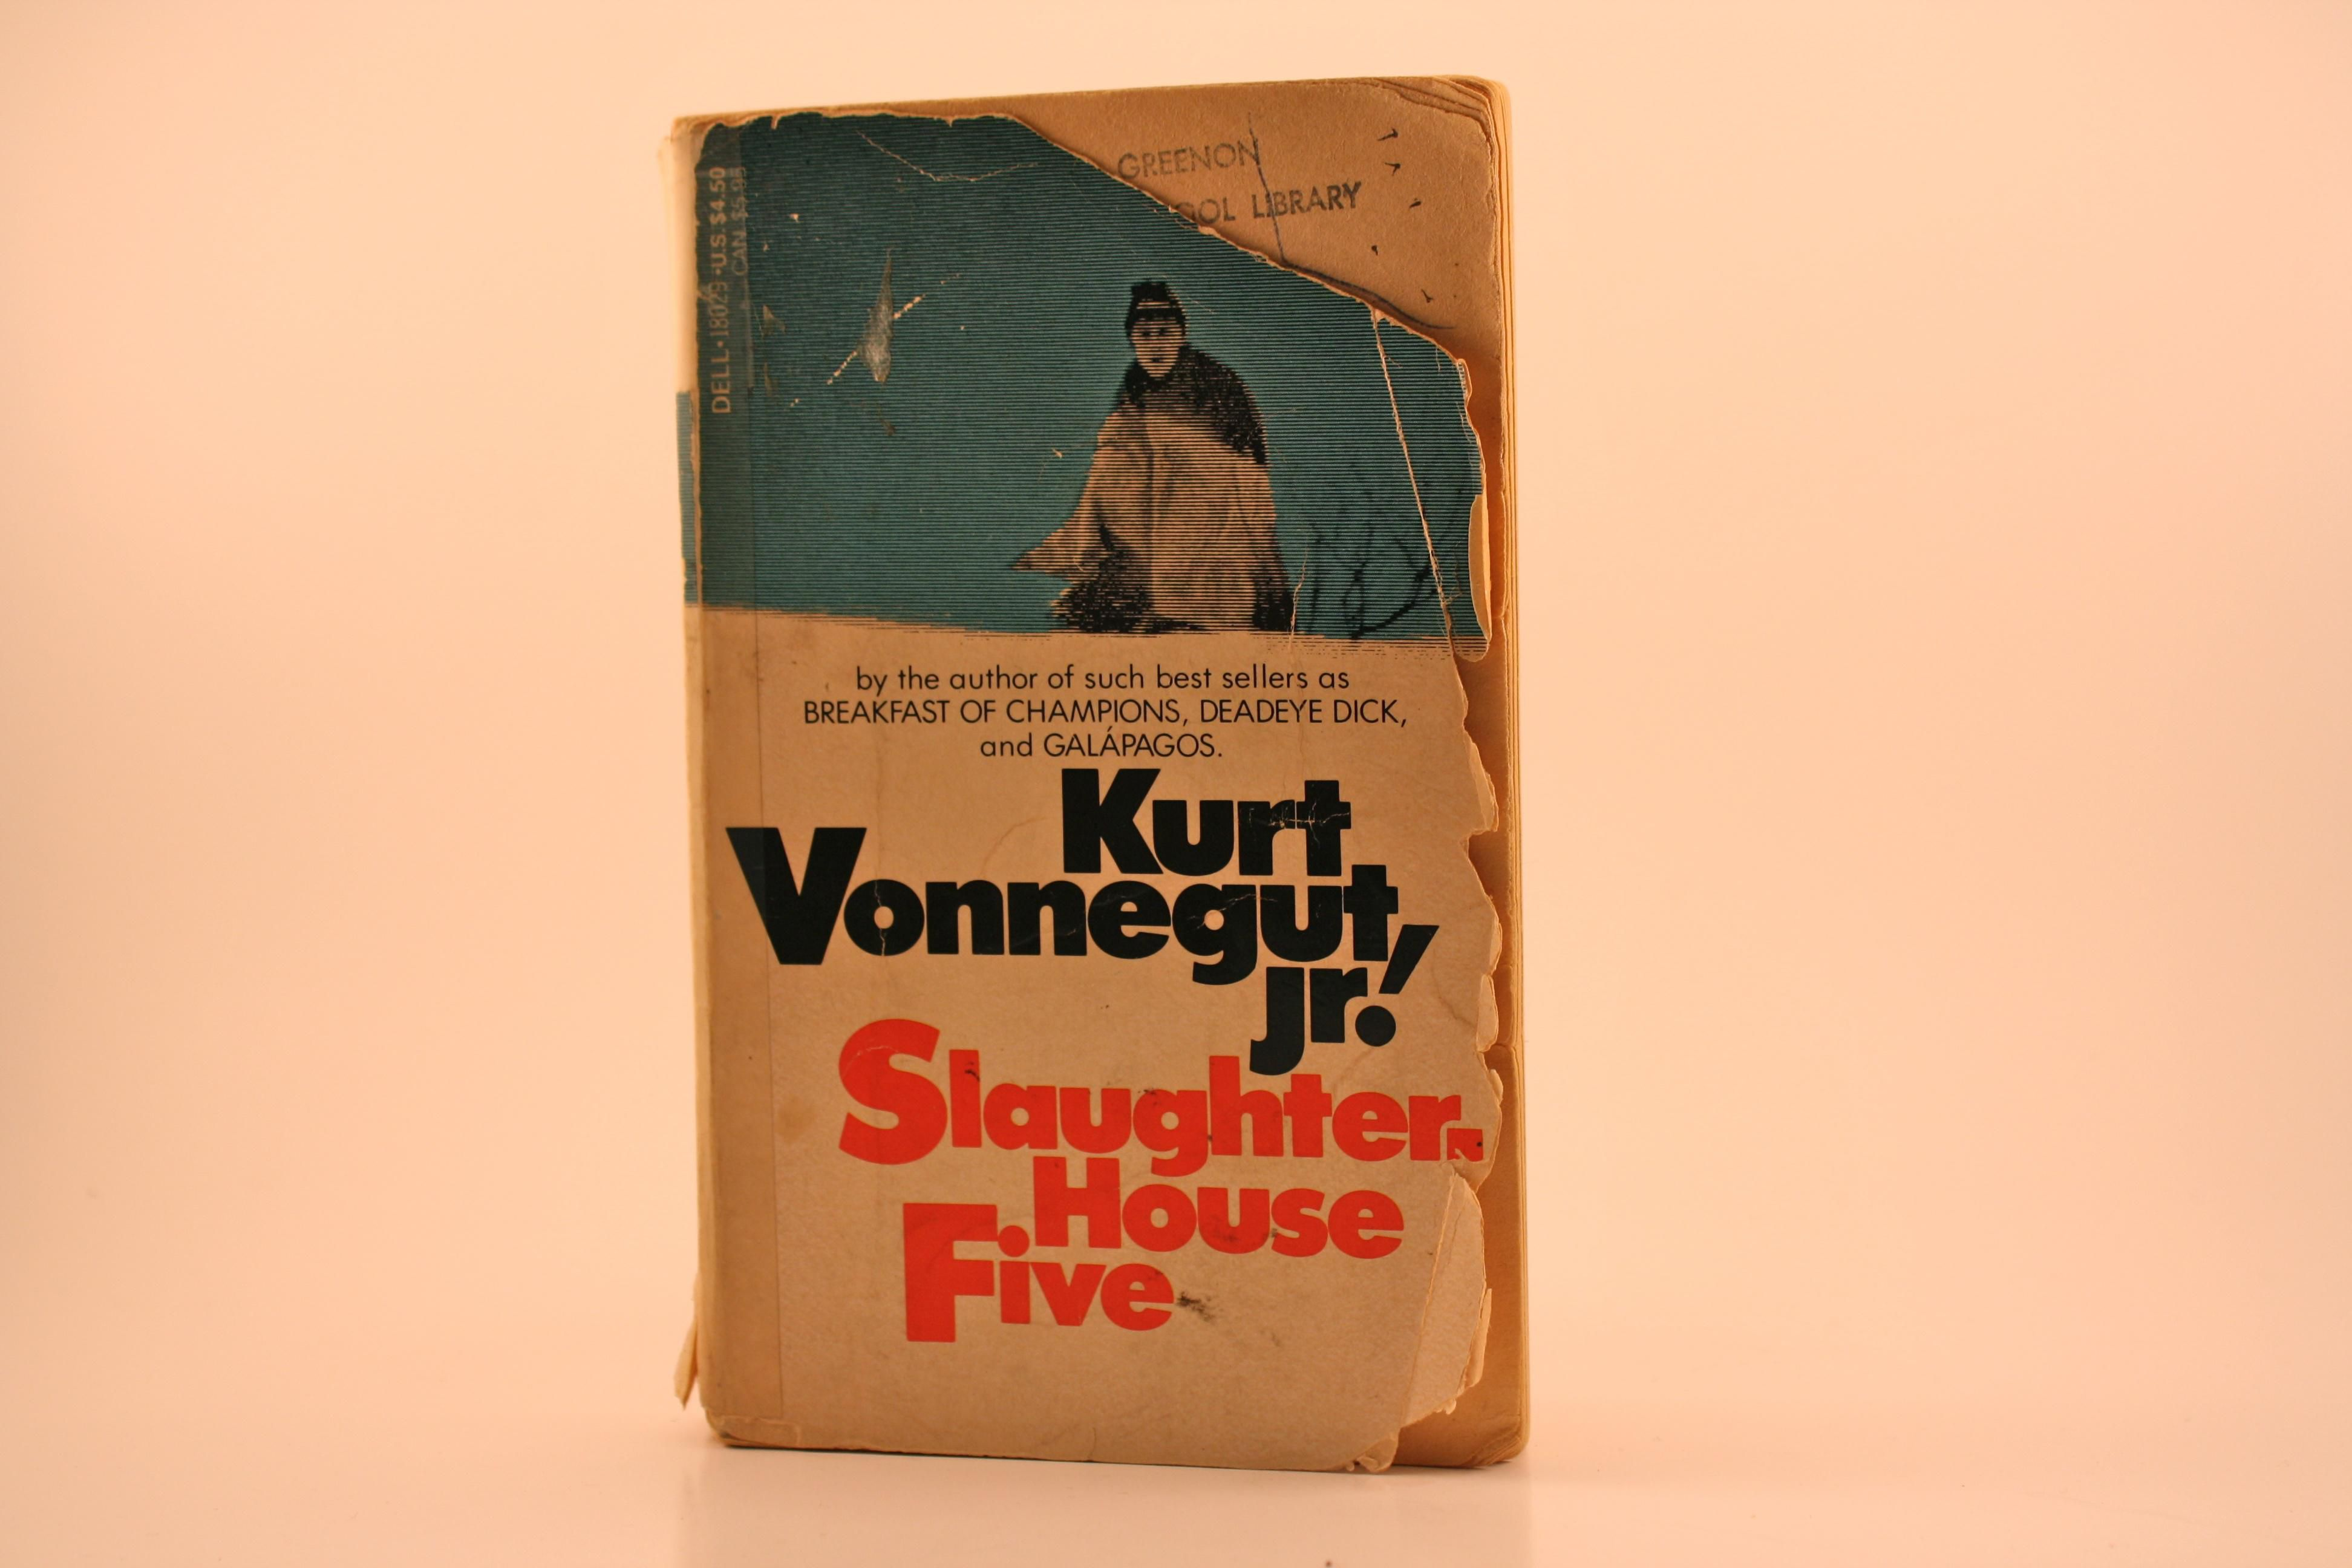 famous quotes from slaughterhouse five by kurt vonnegut famous quotes from slaughterhouse five by kurt vonnegut